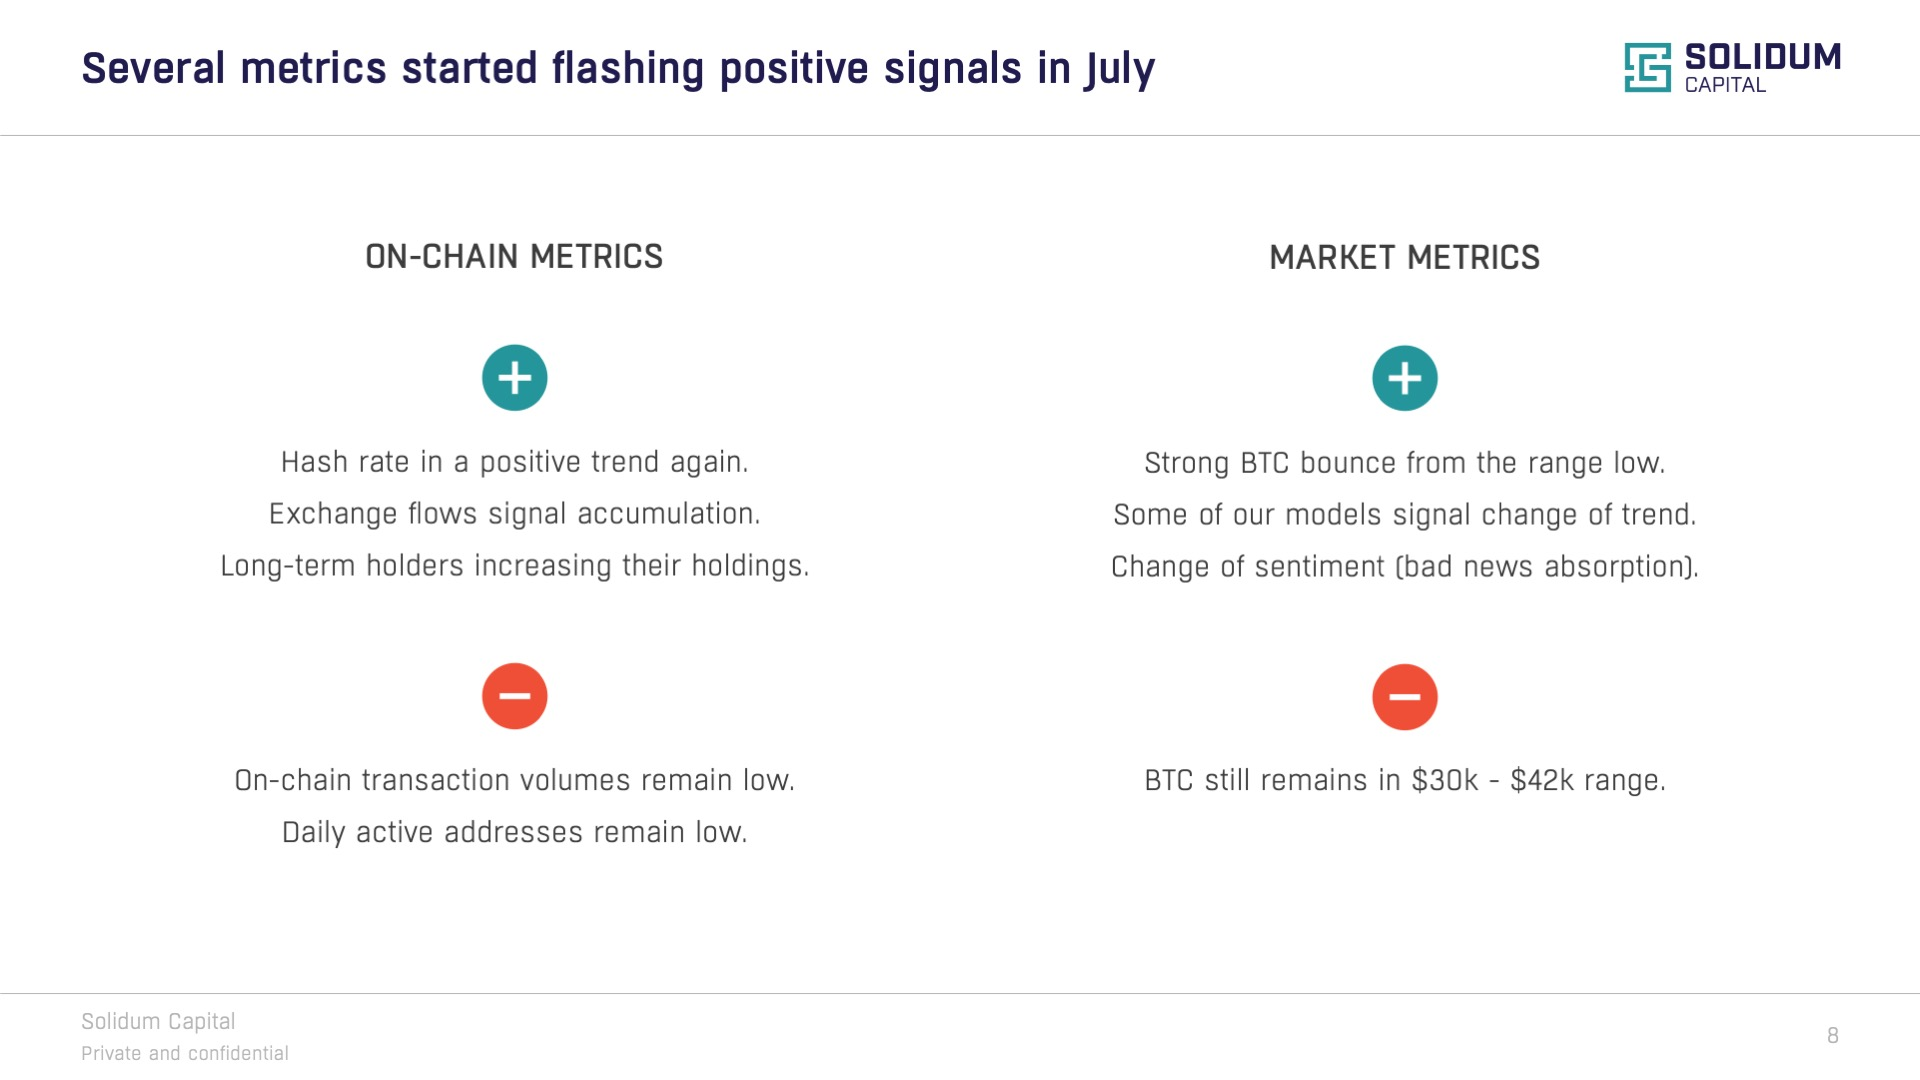 [SC] Market and on-chain data - July 2021